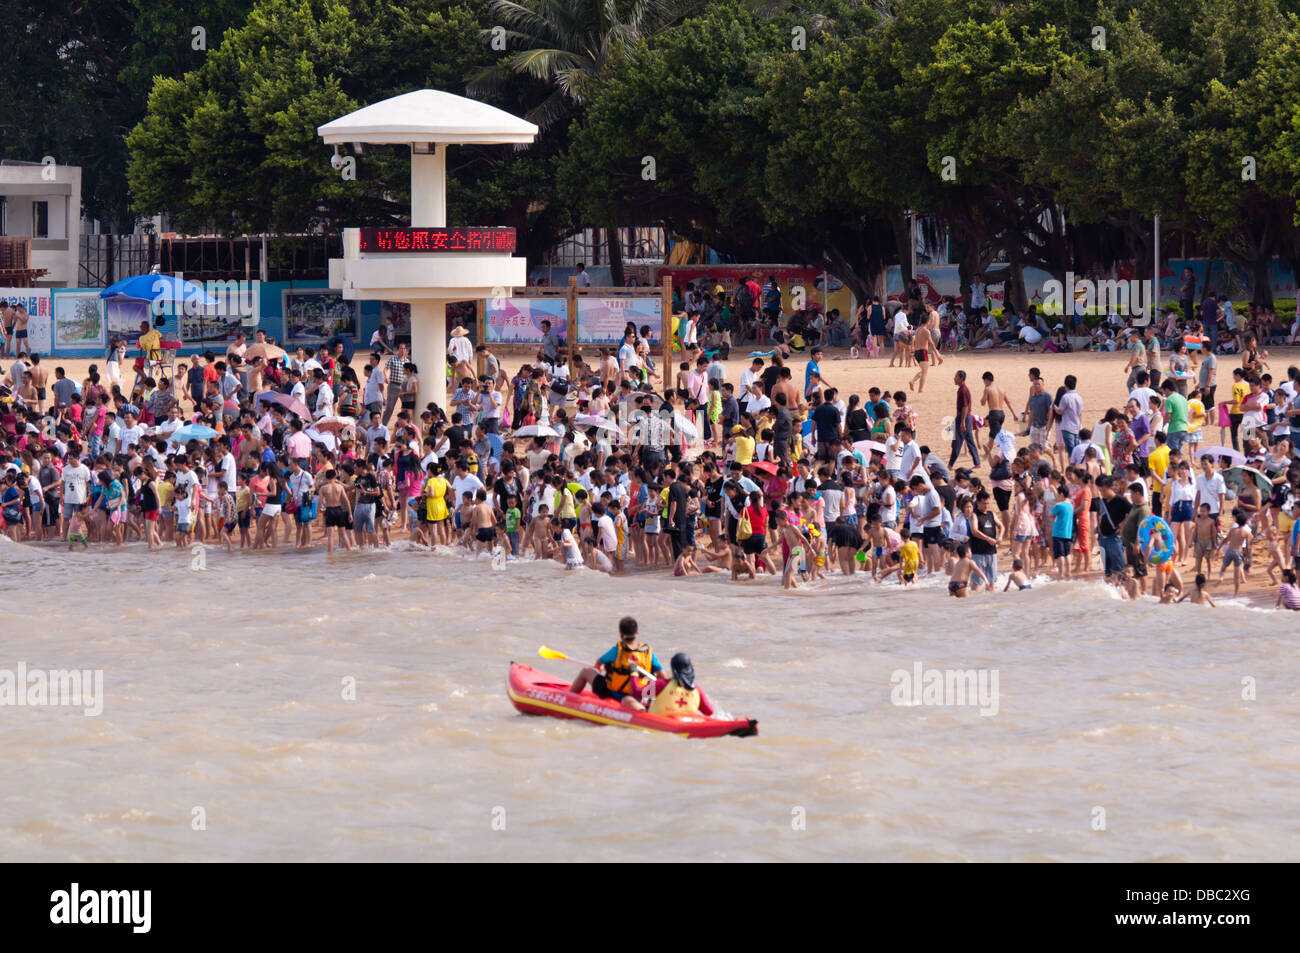 Crowd people at hot summer swimming at the beach in Zhuhai, China - Stock Image